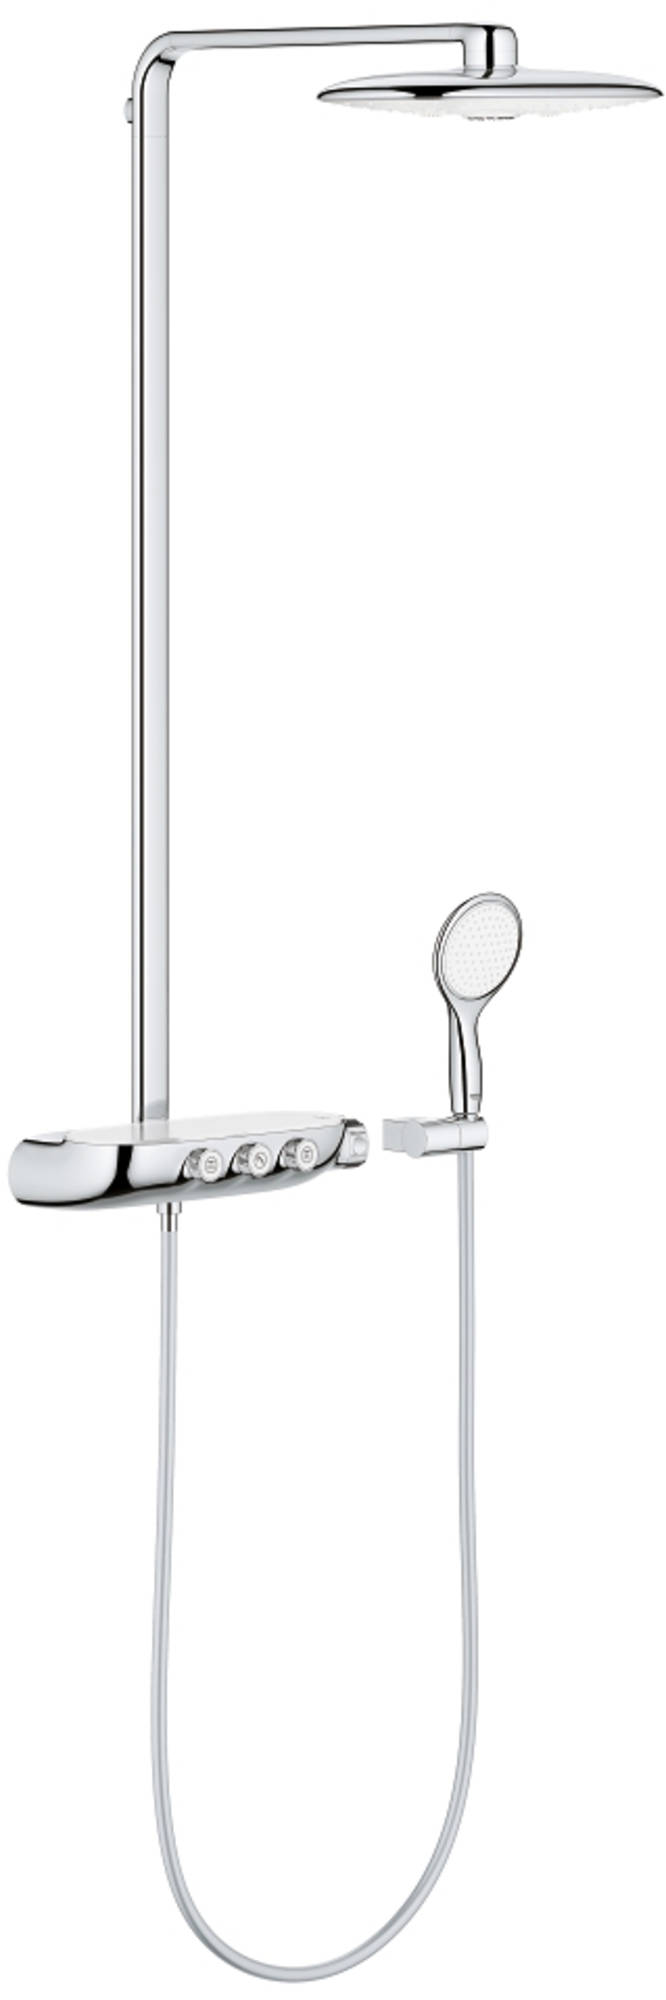 Grohe Rainshower Smartcontrol Douchesysteem 360 duo met Thermostaat Moon White